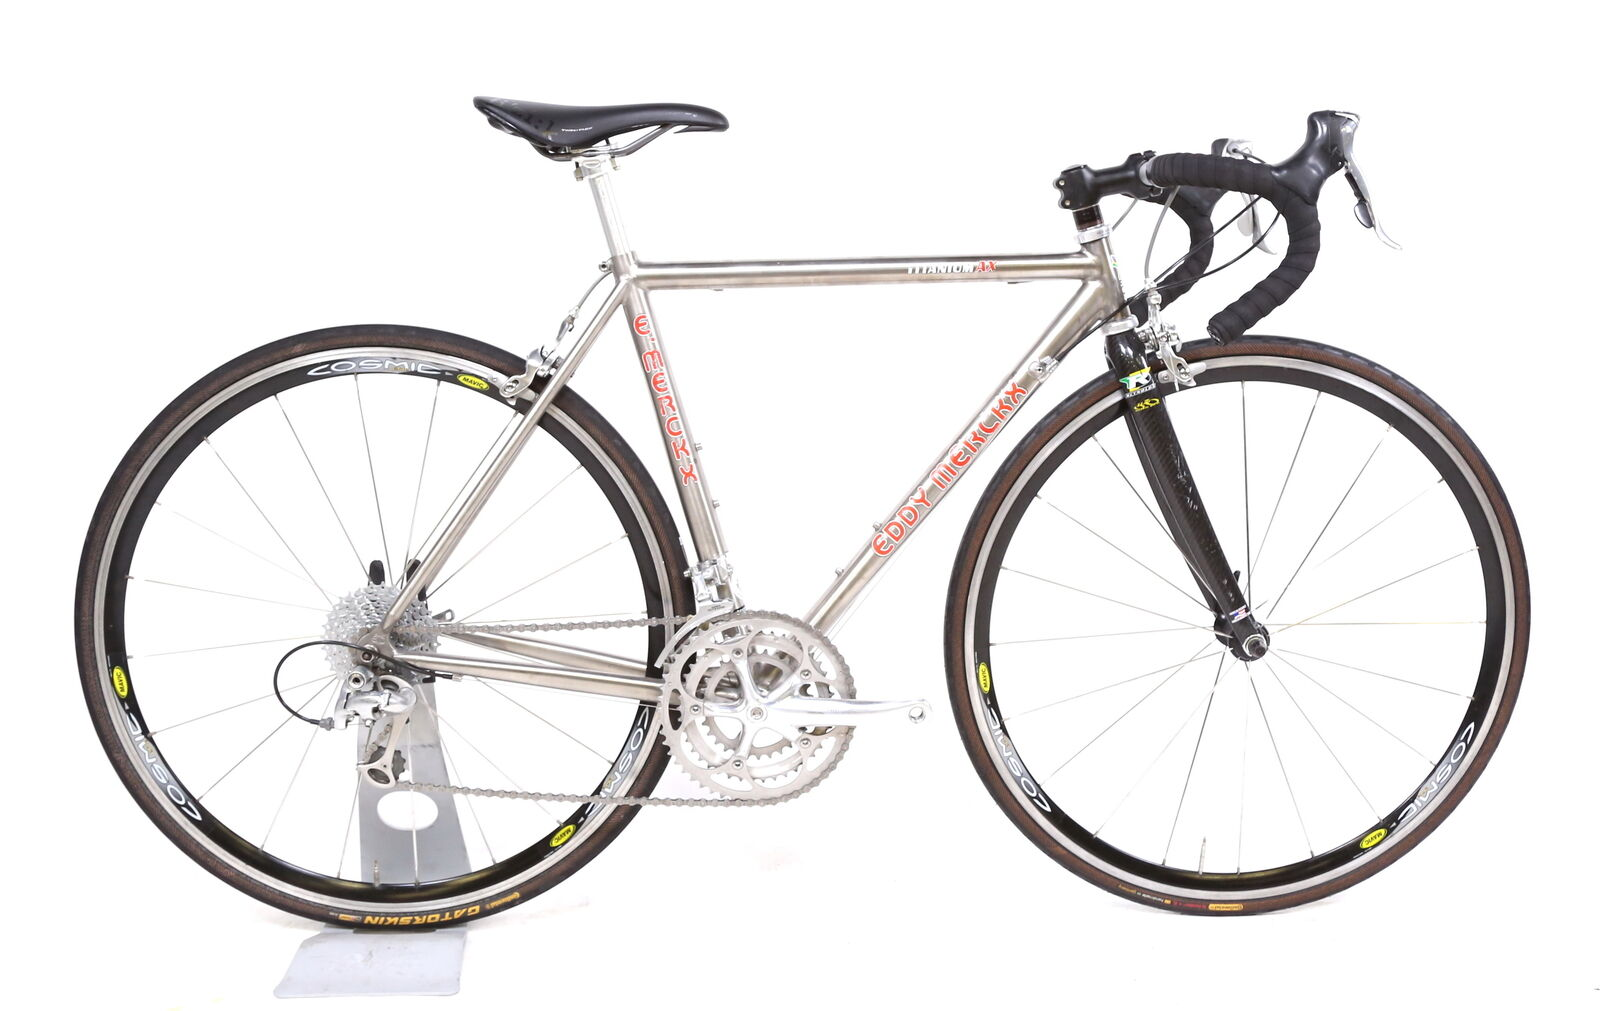 Lapierre Pulsium Ultimate Carbon Bike Road 700c Closeout 46cm X Small For Sale Online Ebay